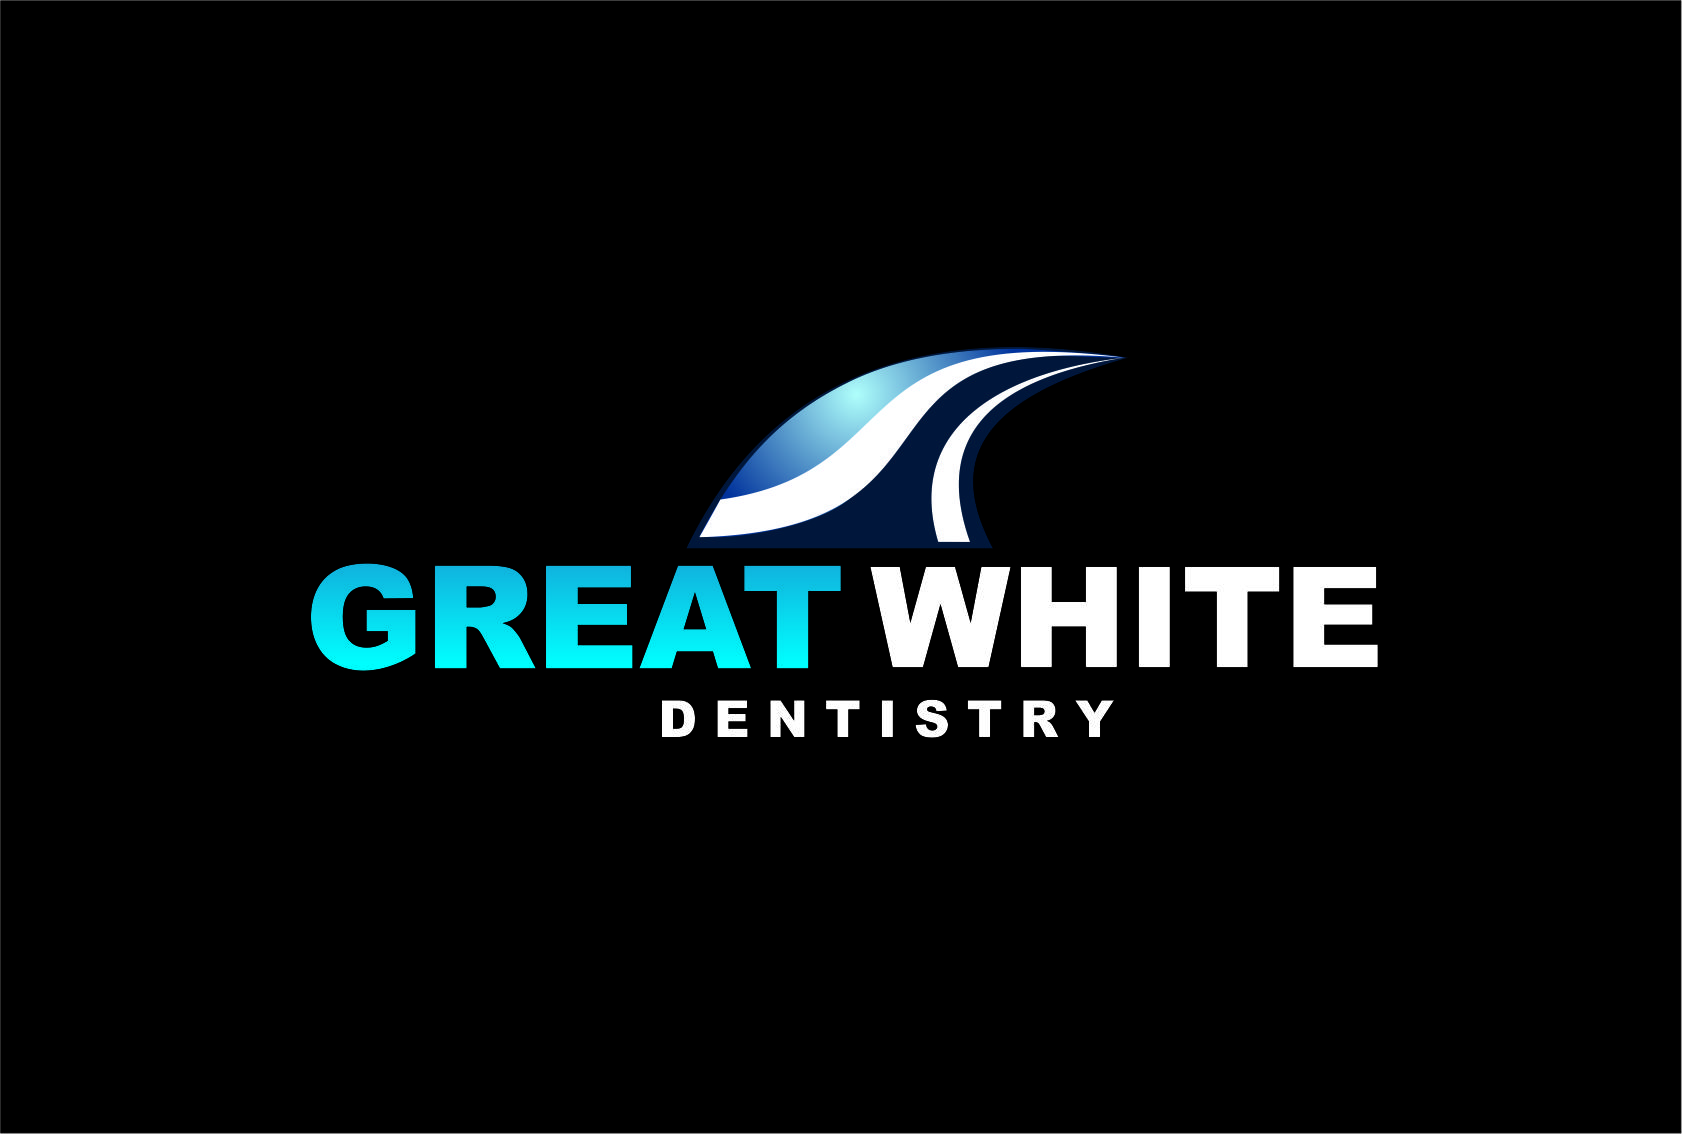 Logo Design by Agus Martoyo - Entry No. 128 in the Logo Design Contest Logo Design for Great White Dentistry.